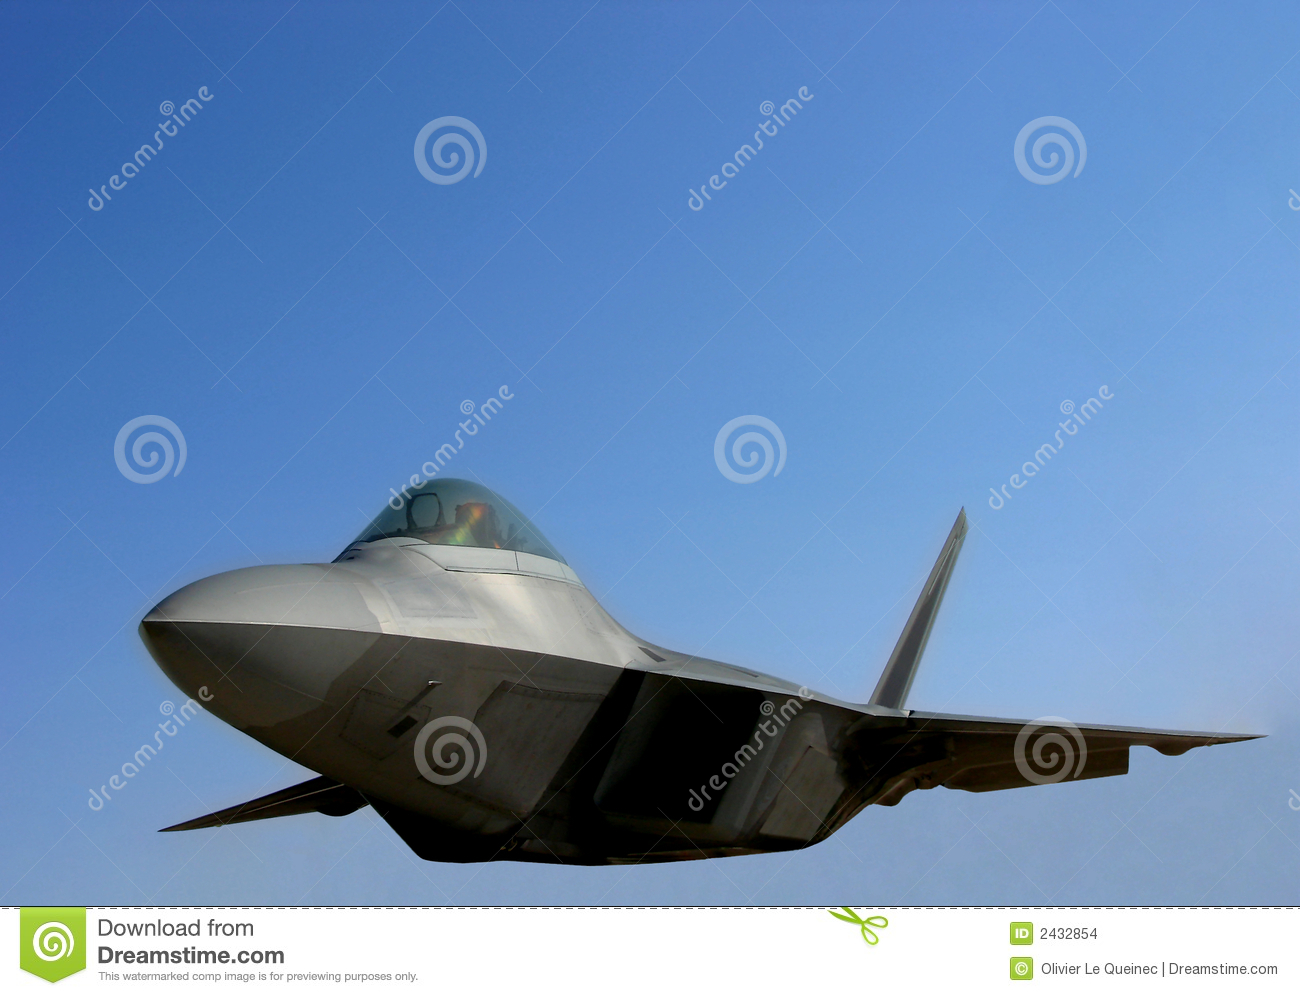 Air f22 fighter flying force plane raptor